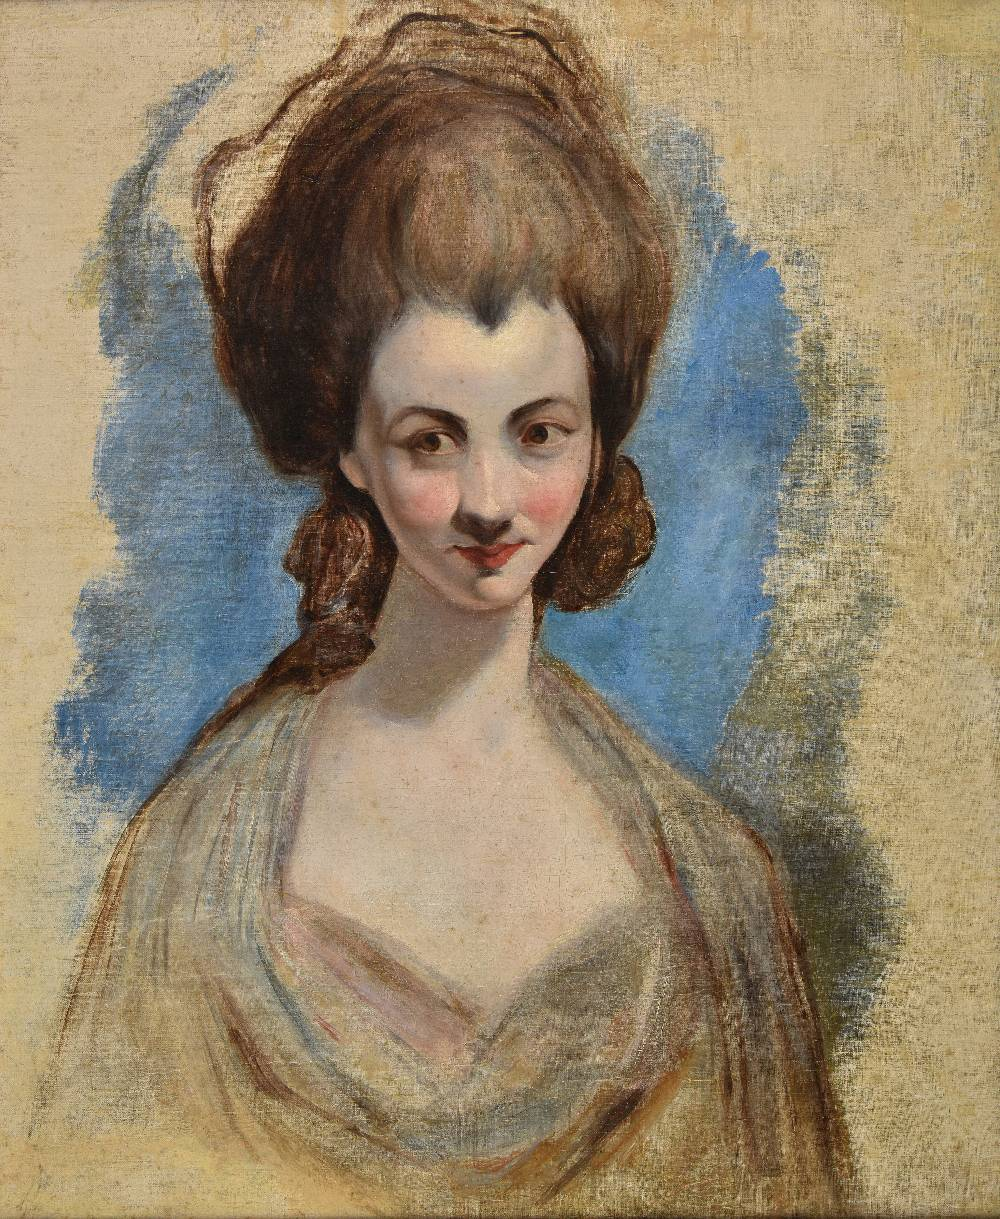 Lot 23 - *After Matthew William Peters (1742-1814). A 19th century unfinished copy of a portrait of a young